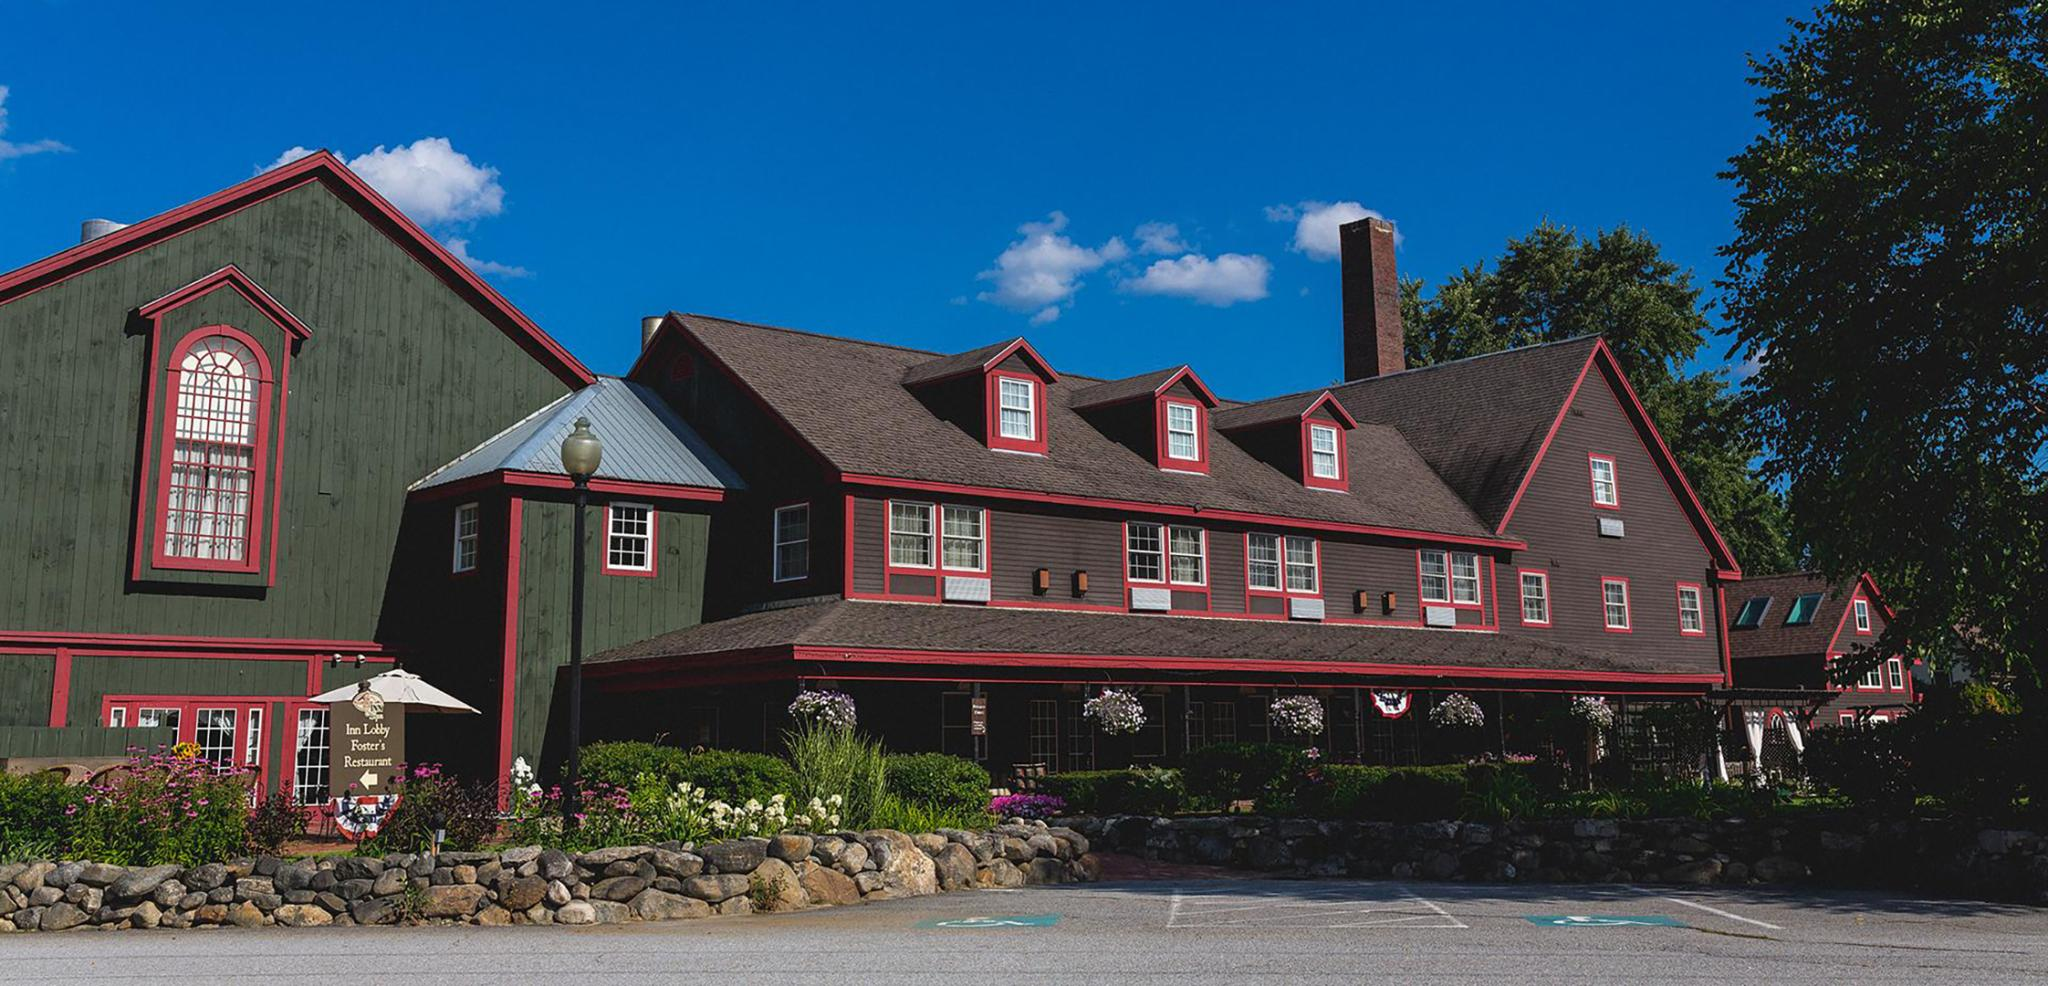 Unique Lodging Vacations In New Hampshire New England Inns And